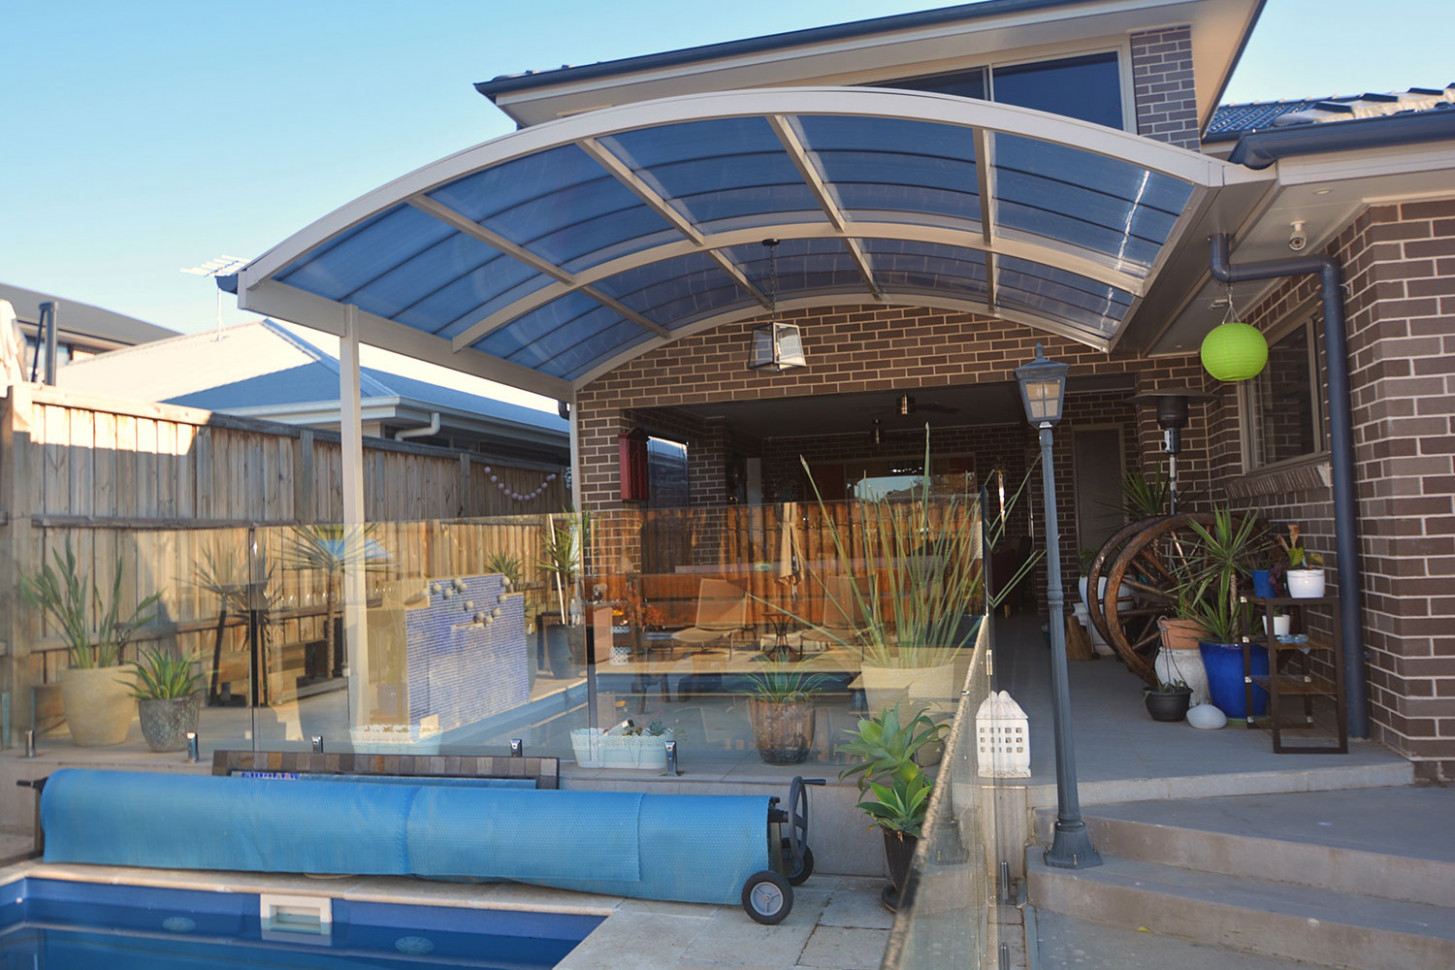 Commercial Awnings For Flat & Pitched Roofs | ATS Awnings Curved Roof Carports Sydney